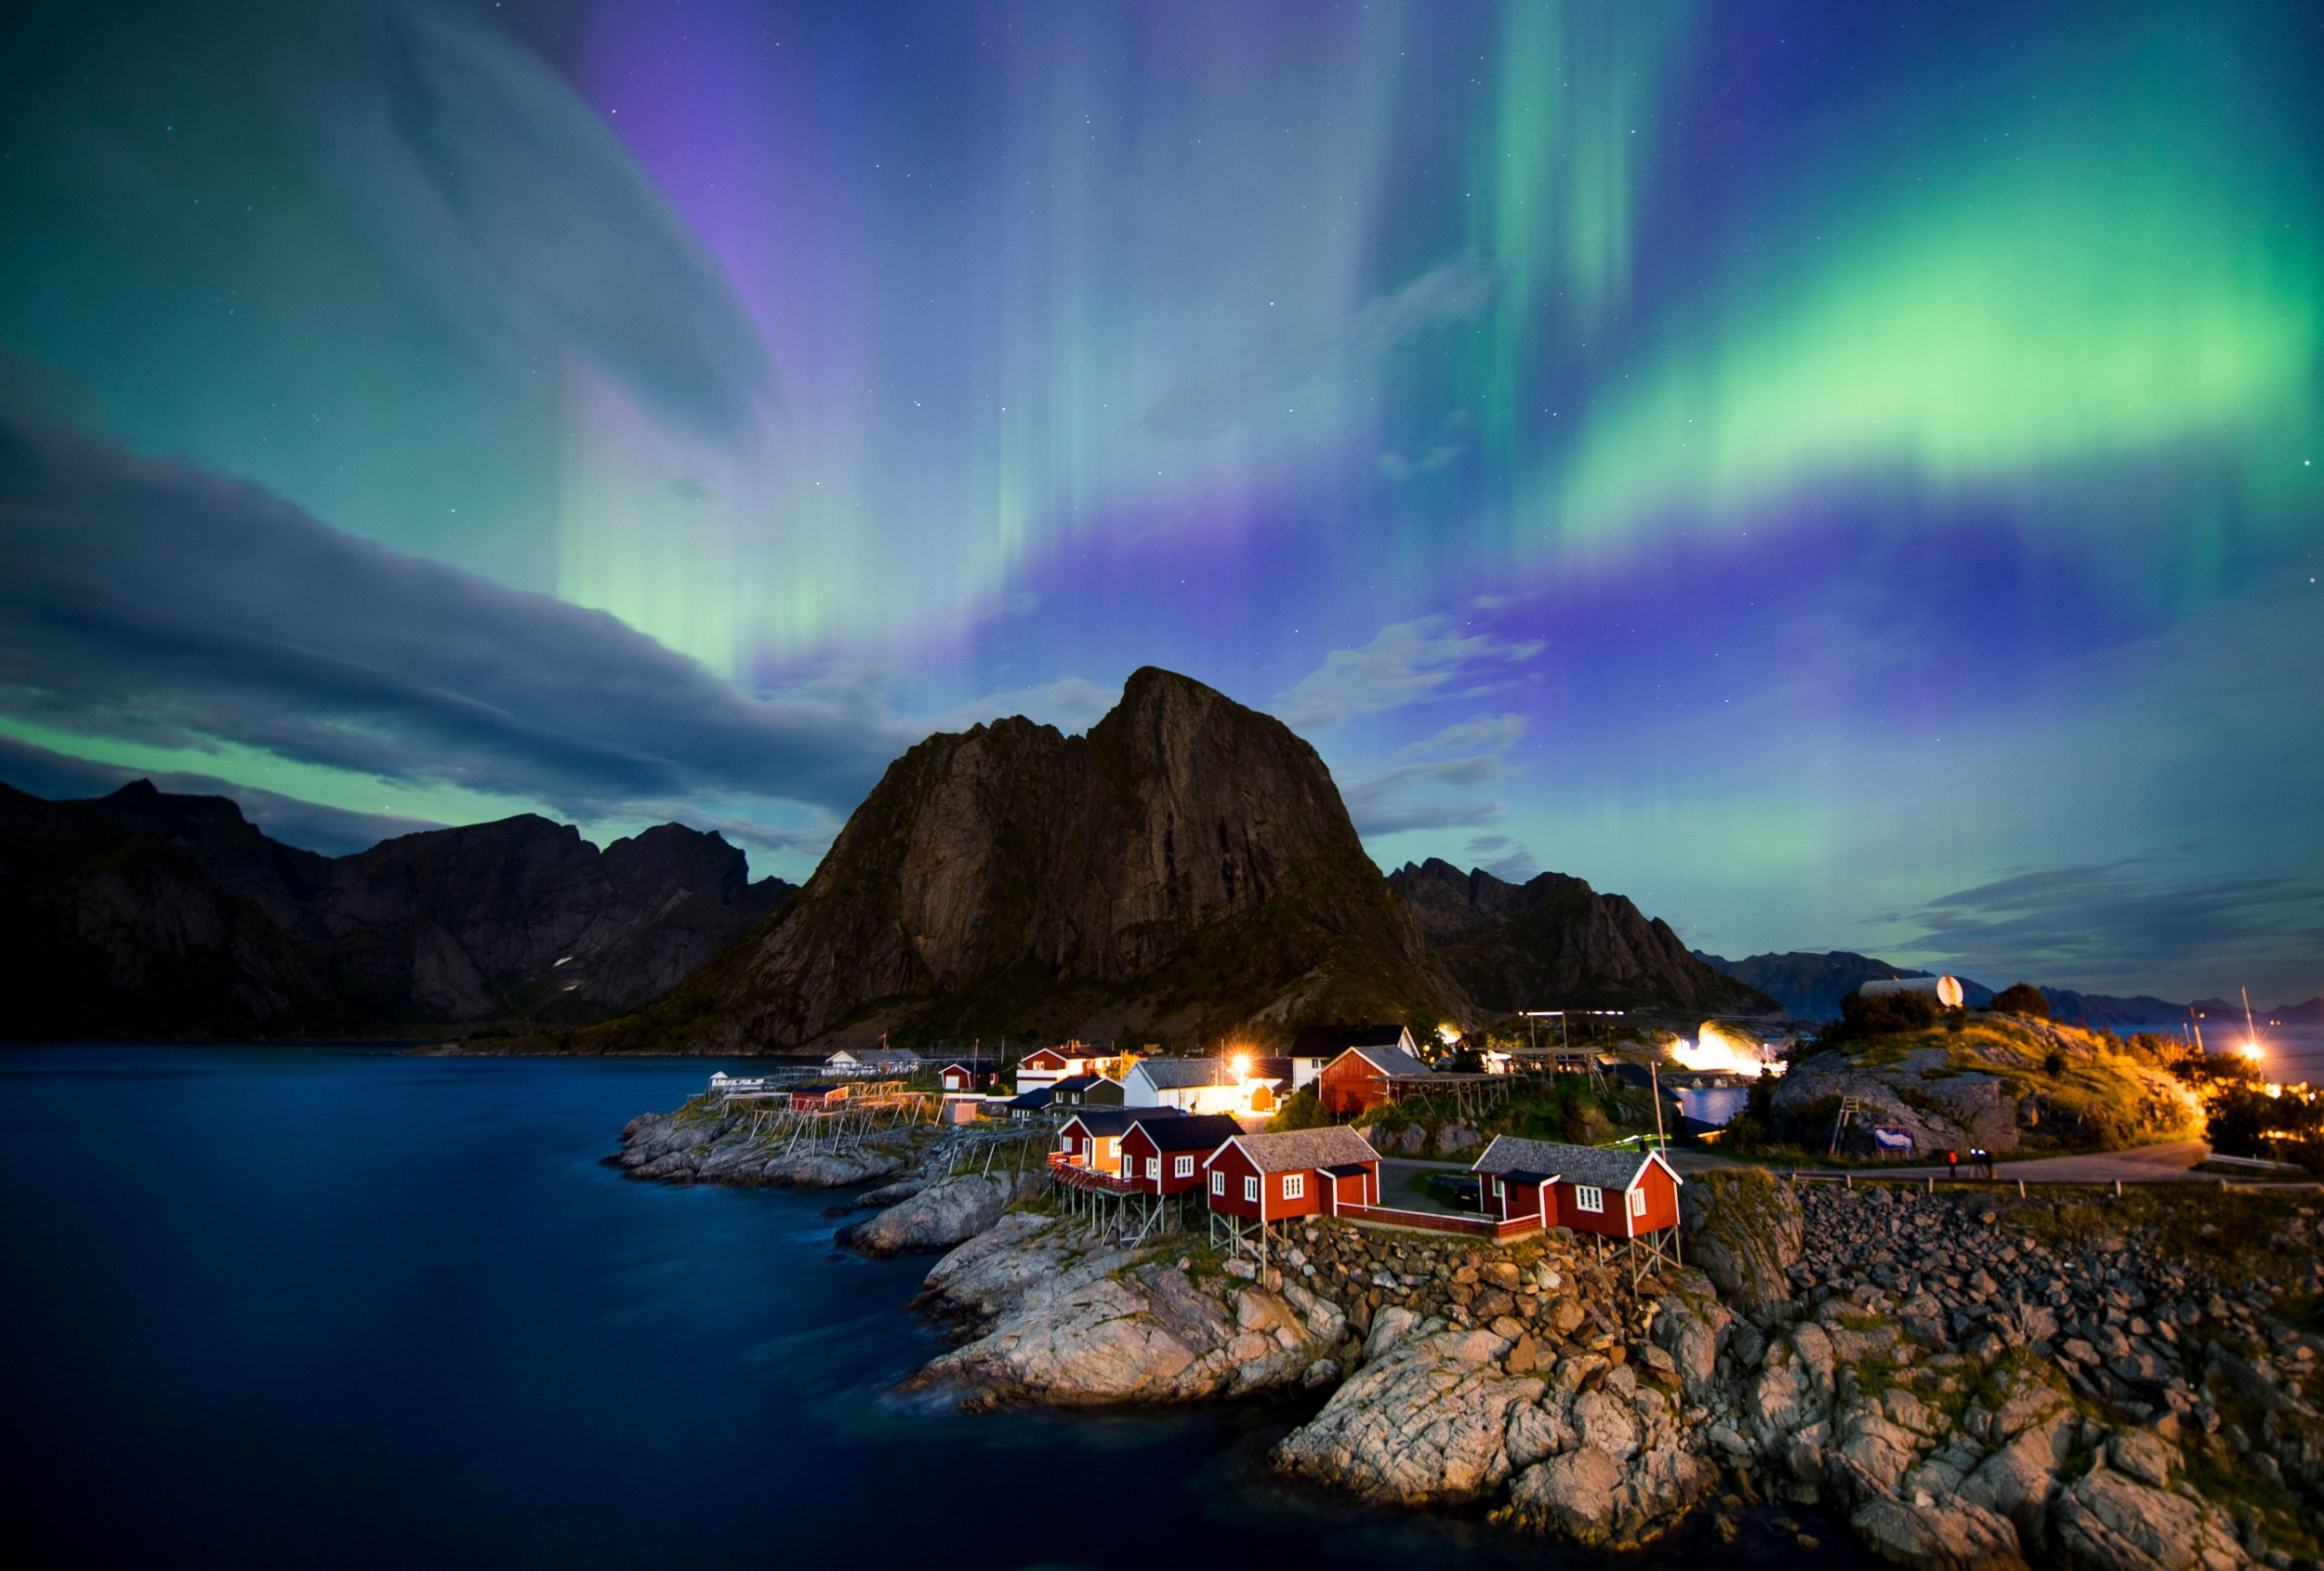 03_02_norway_northern_lights